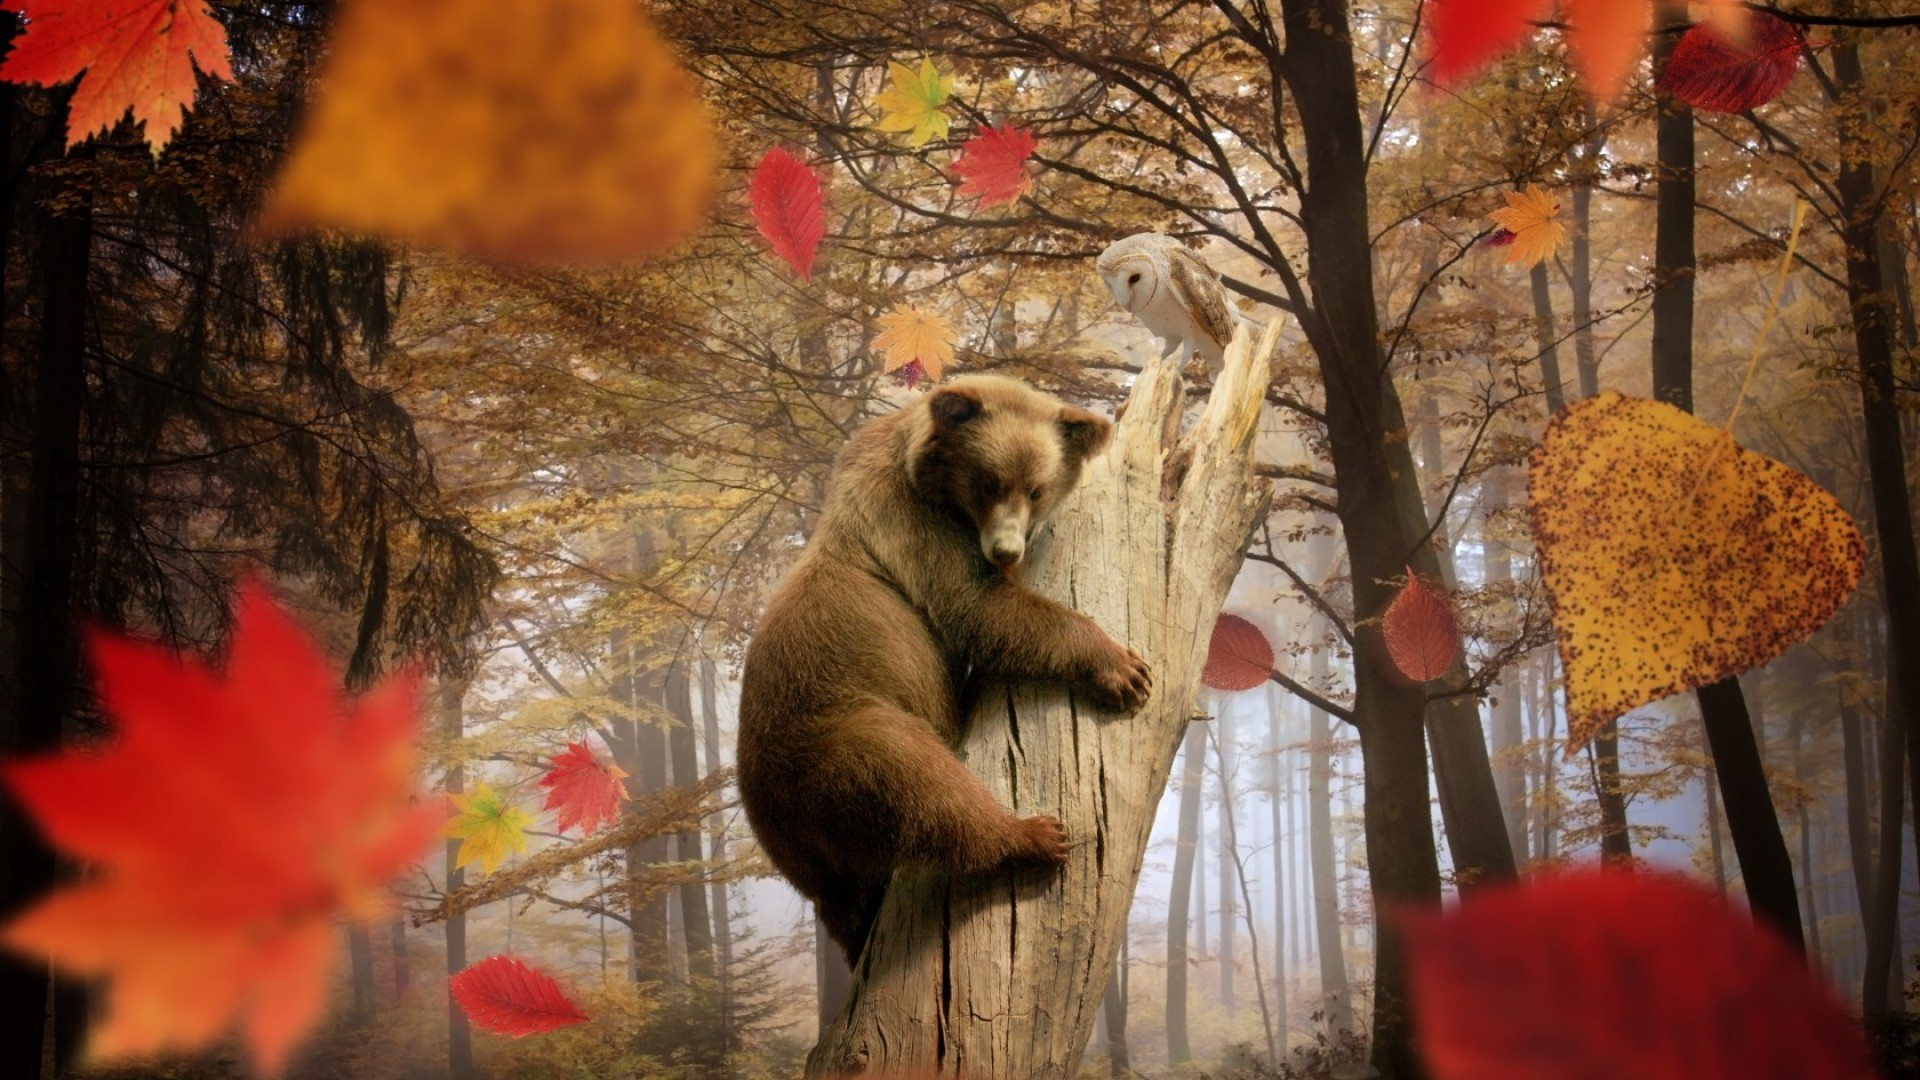 Animal Crossing Fall Wallpaper Nature Landscape Trees Leaves Fall Animals Bears